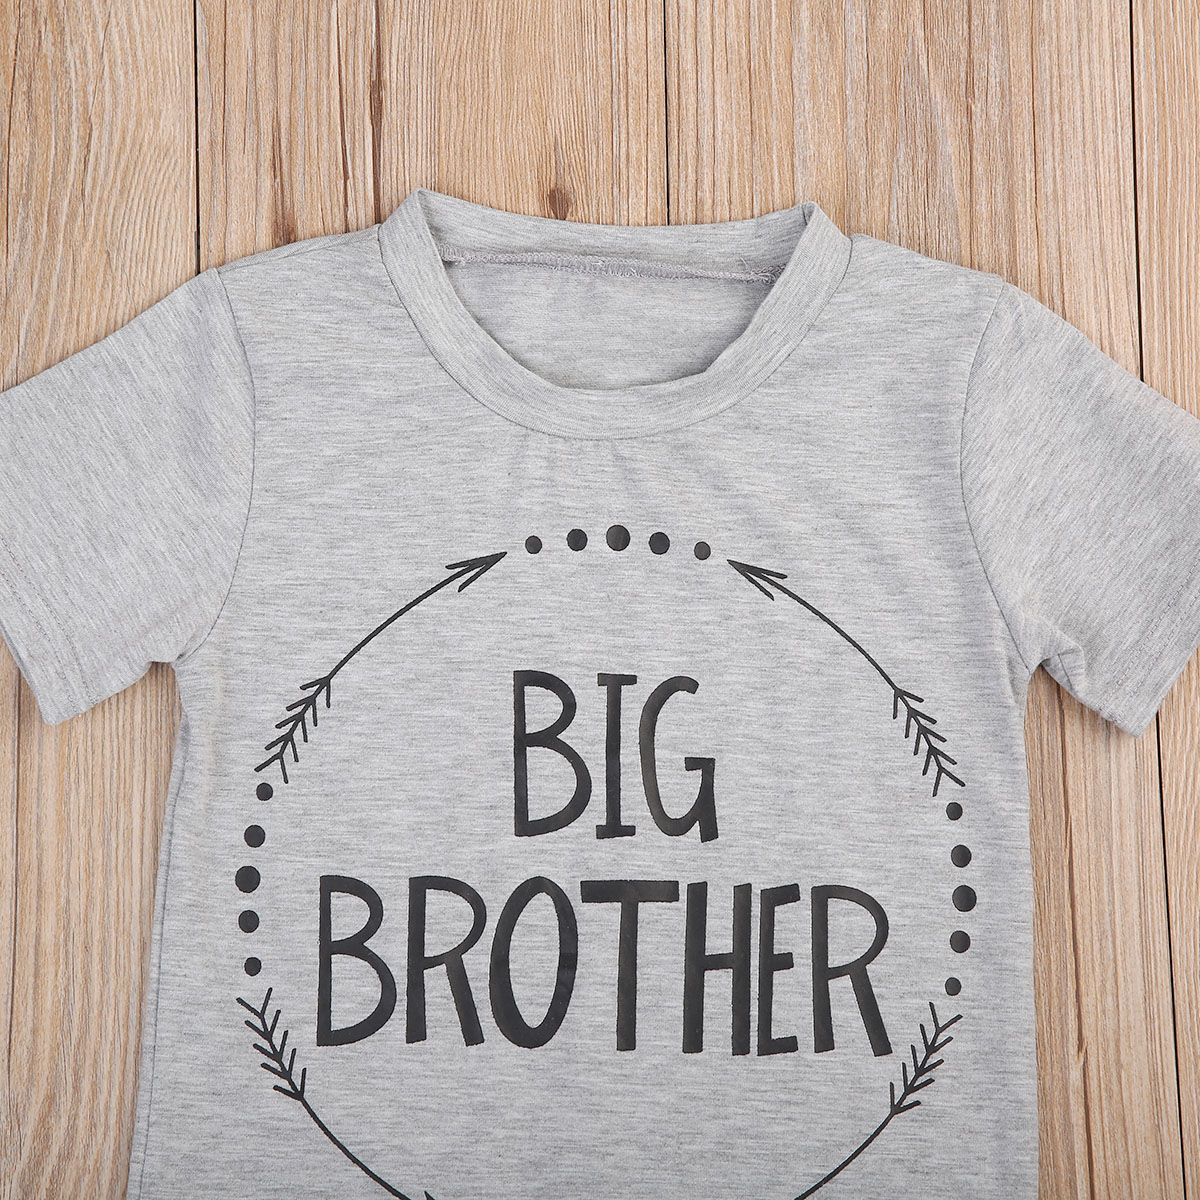 Newborn-Baby-Boys-Kids-Clothing-Top-T-Shirt-Short-Sleeve-Cotton-Letter-Outfit-Clothes-Tops-Boy-2